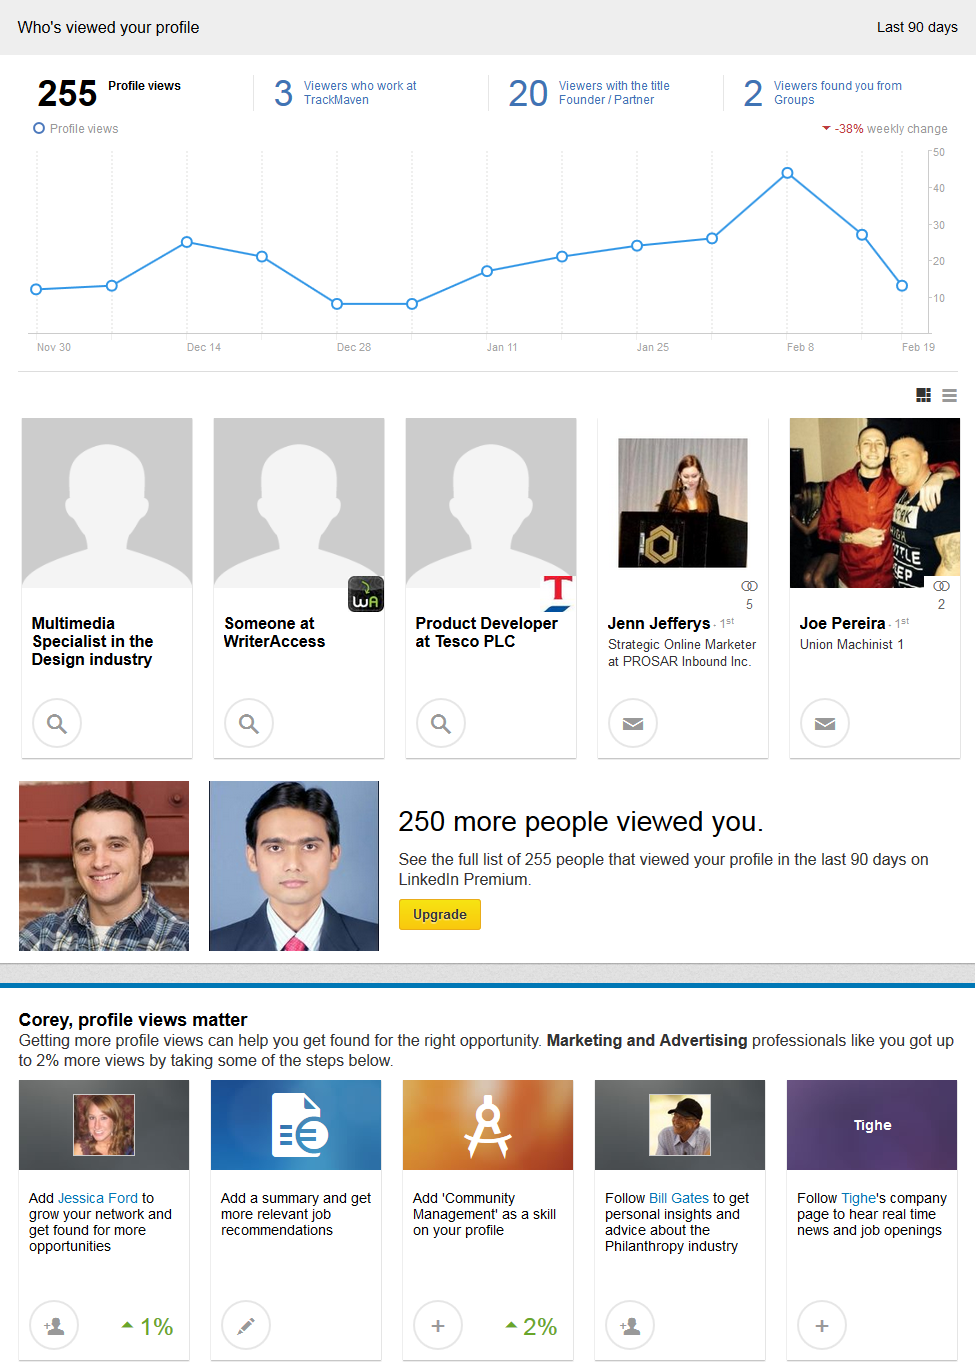 new-linkedin-profile-viewed